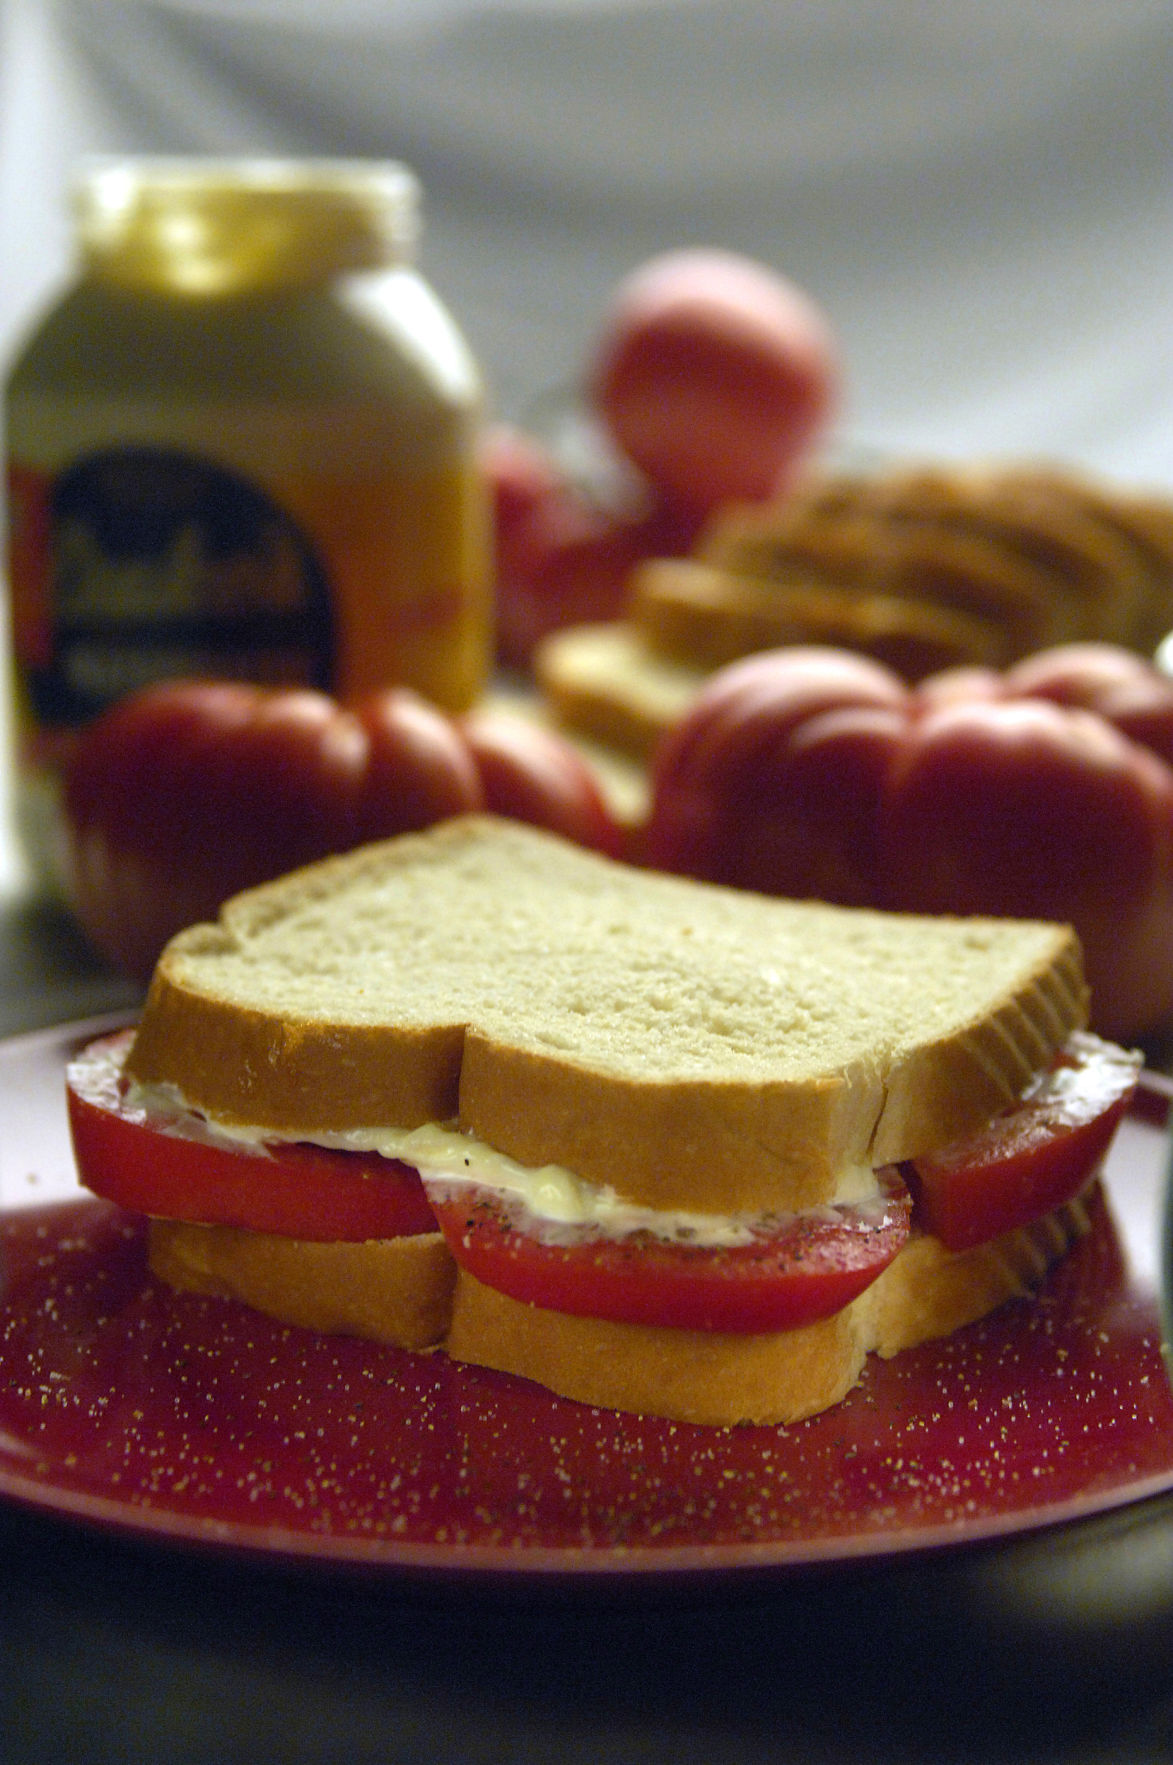 Remembering sandwiches of my youth